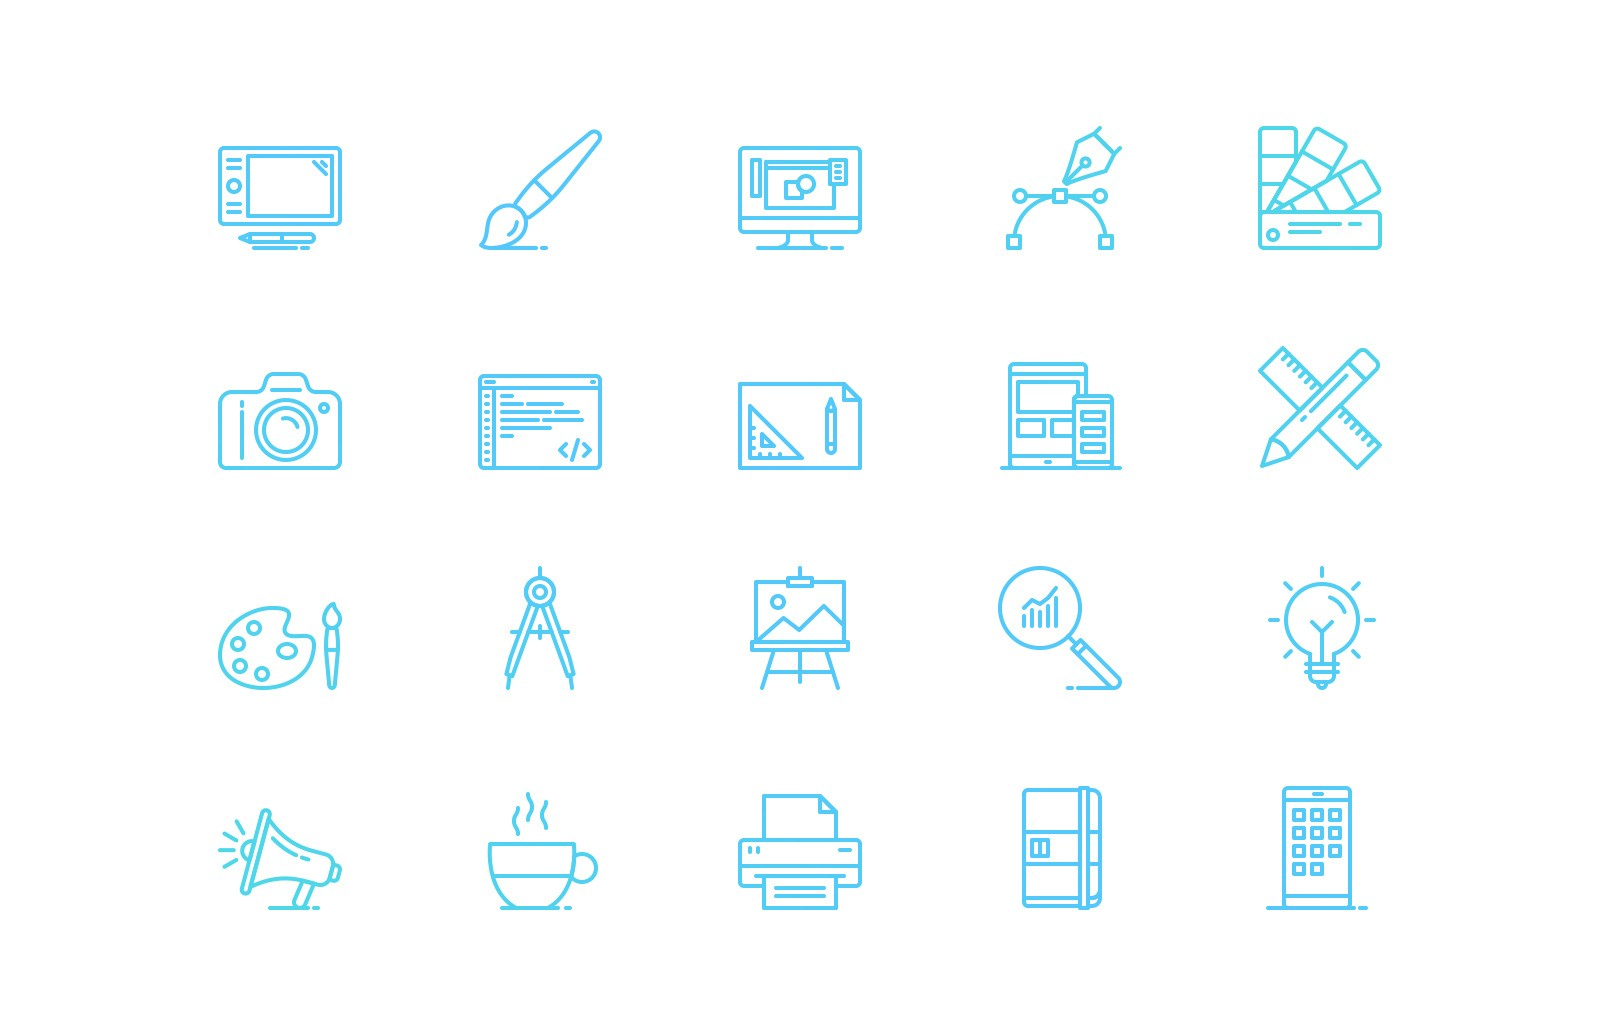 UI & Graphic Design Line Icons 2